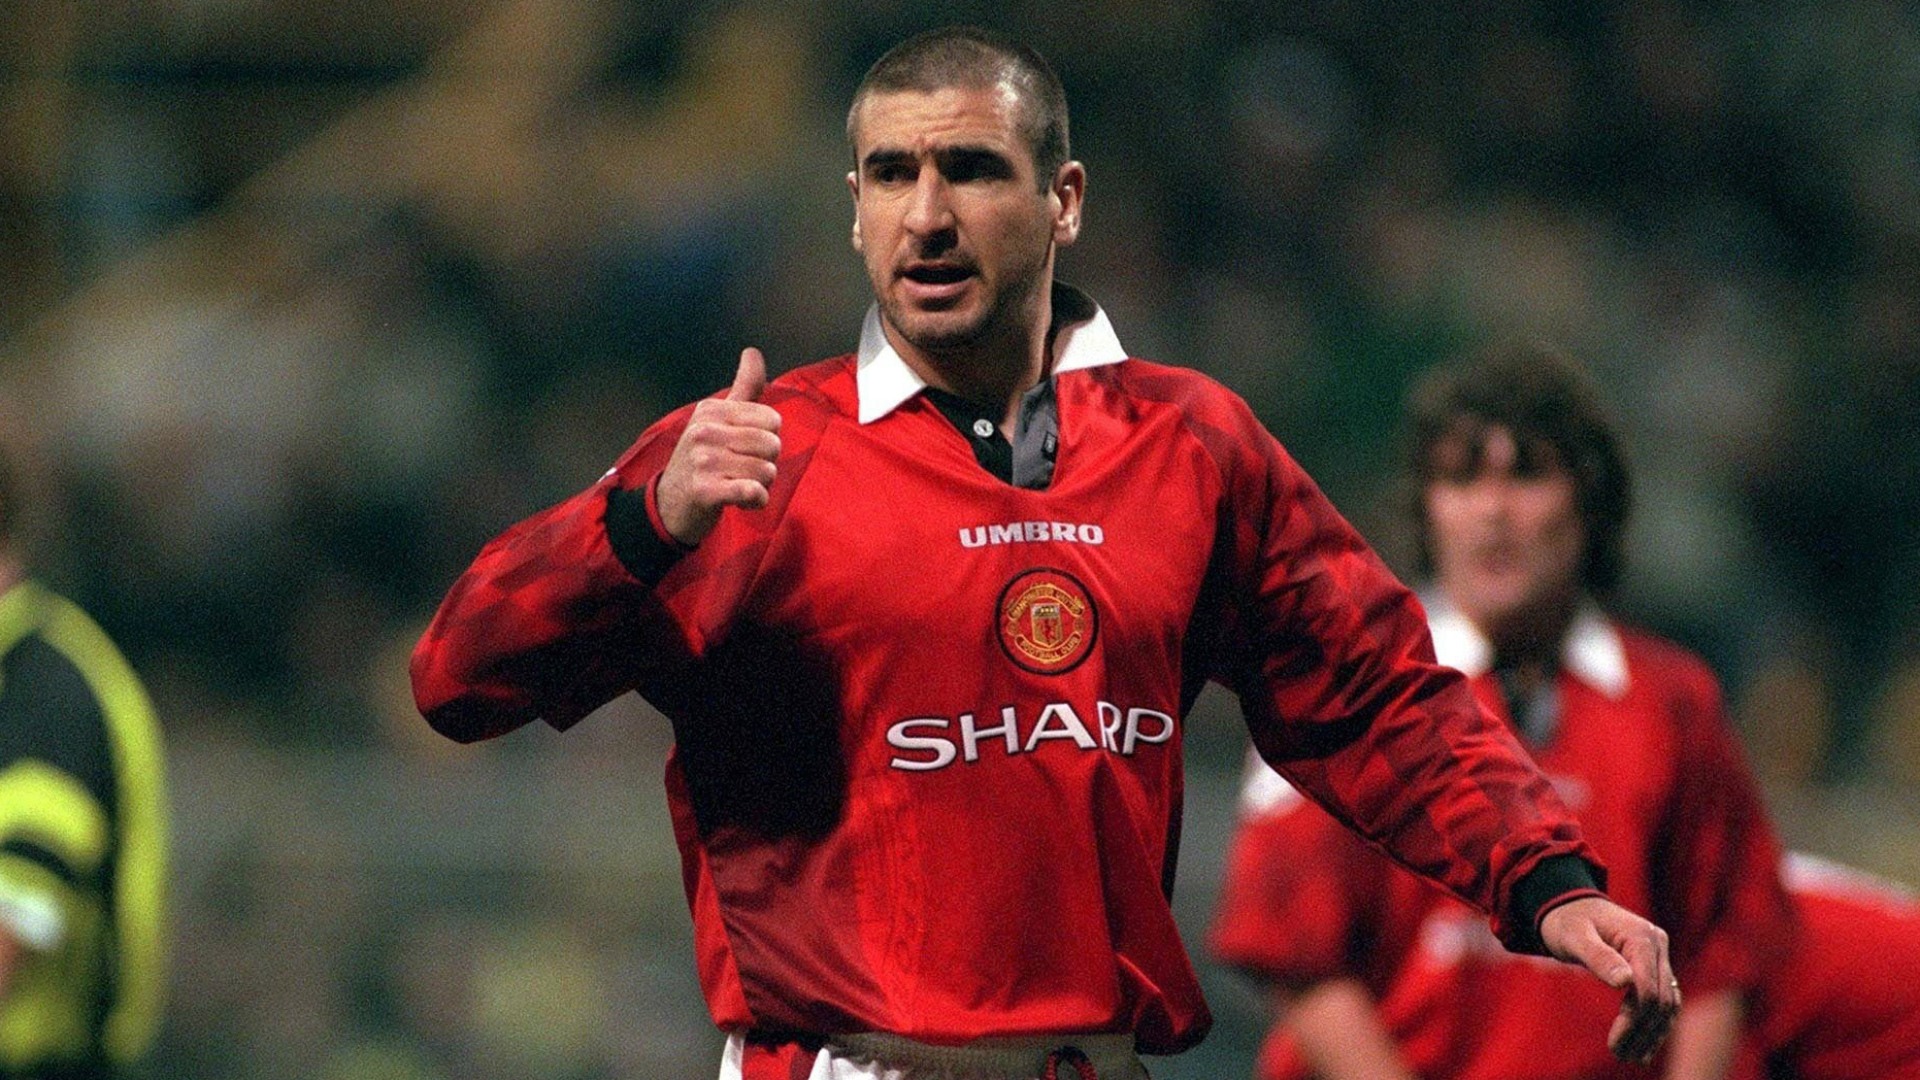 Liverpool could have stopped Cantona becoming Manchester United icon but Souness passed on signing